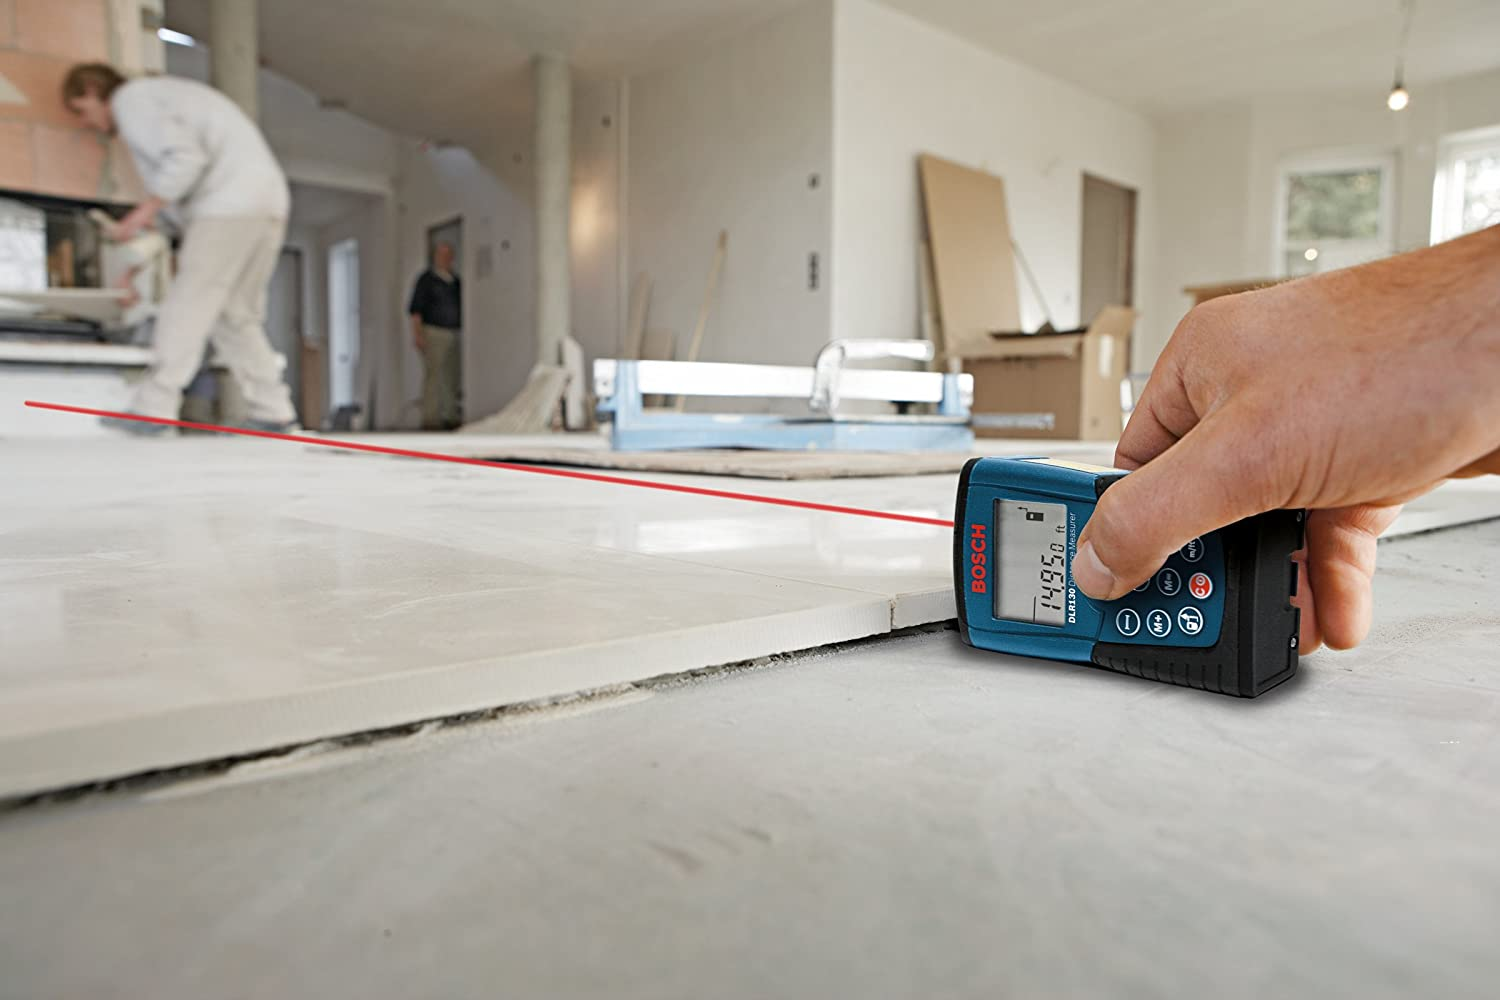 How to use a laser level for laying tiles how to use a laser level to install tiles dailygadgetfo Choice Image